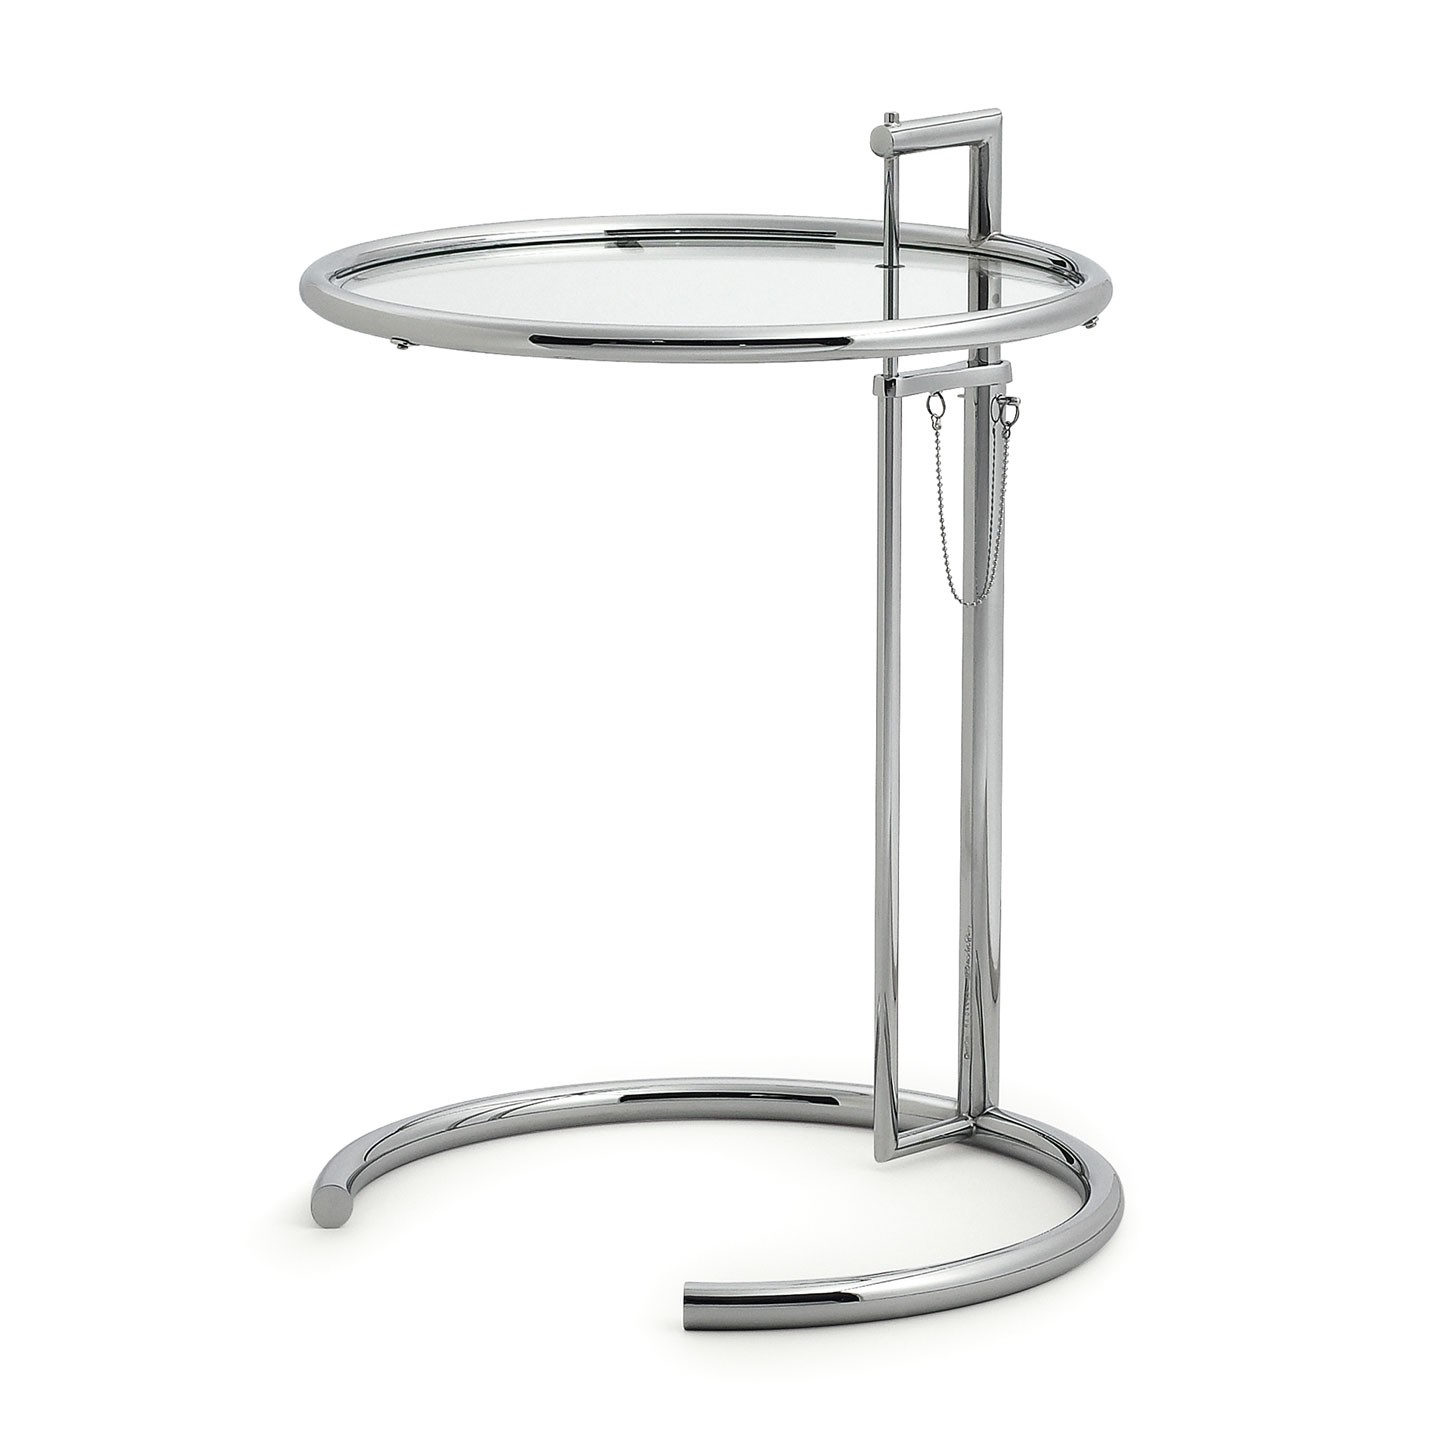 Adjustable Table E 1027, Eileen Gray